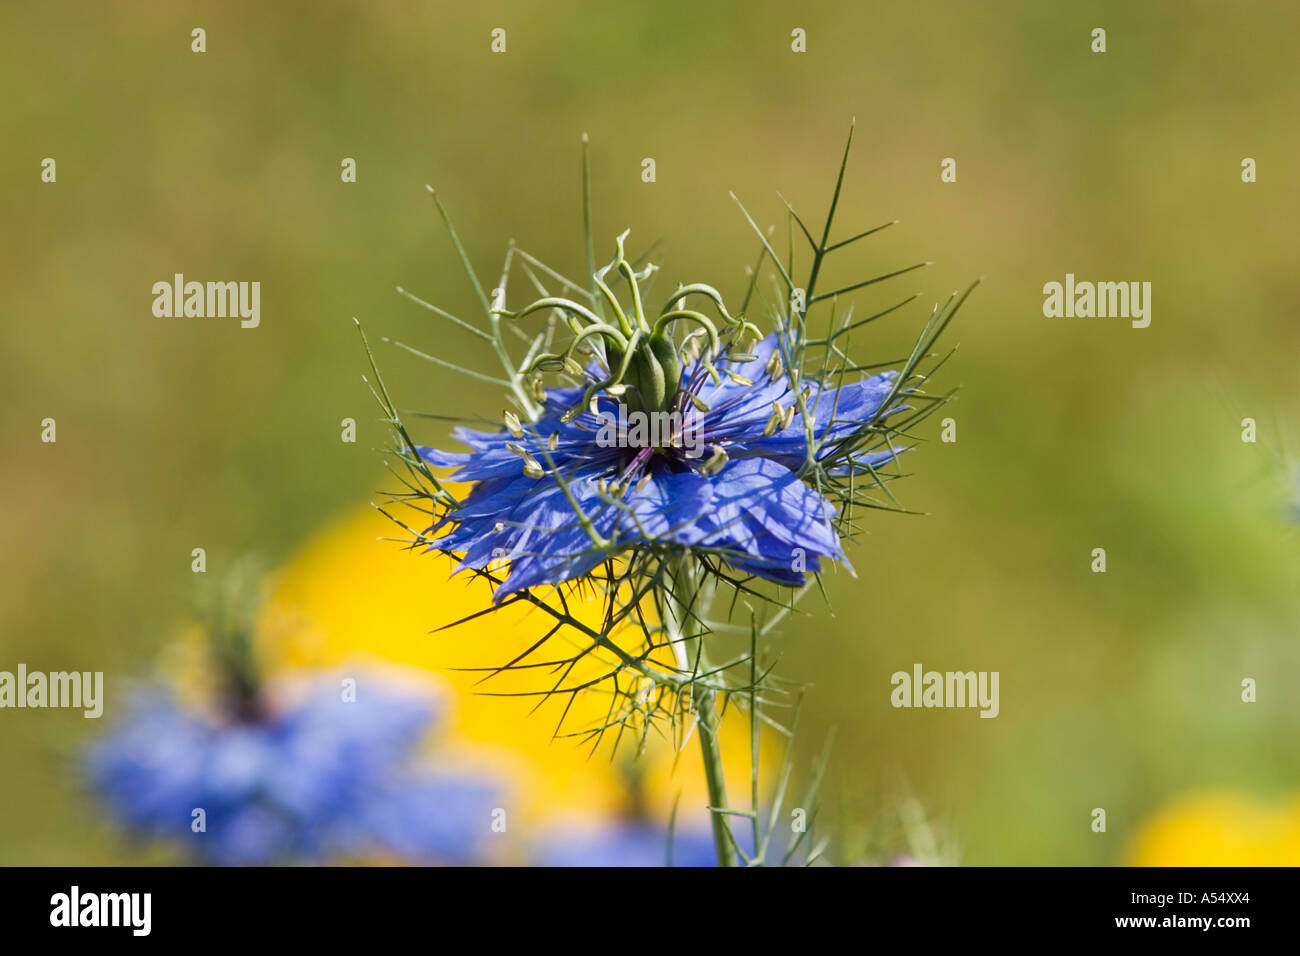 Love-in-a-Mist - Nigella damascena Miss Jeckyll - Ranunculaceae Stock Photo